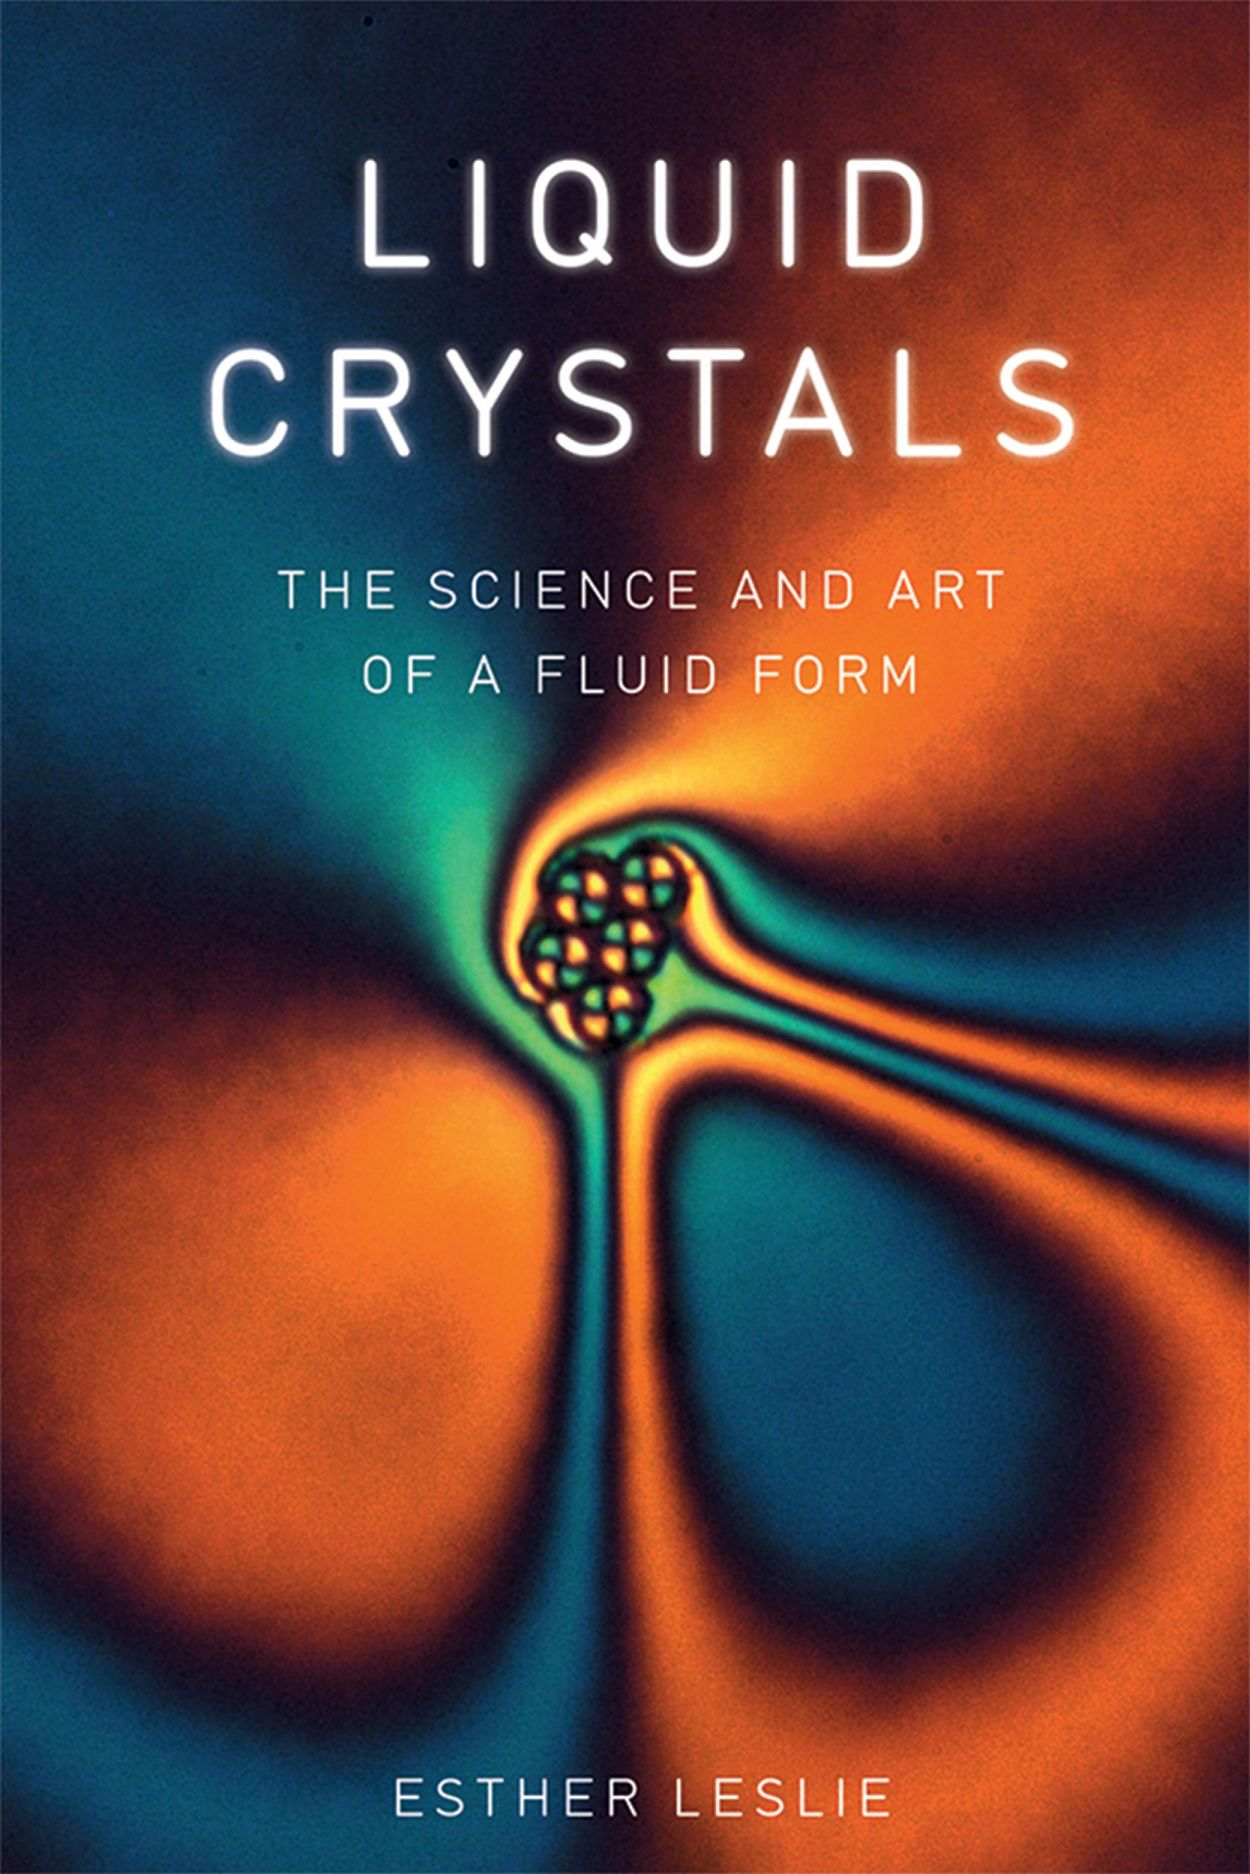 Liquid Crystals: The Science and Art of a Fluid Form